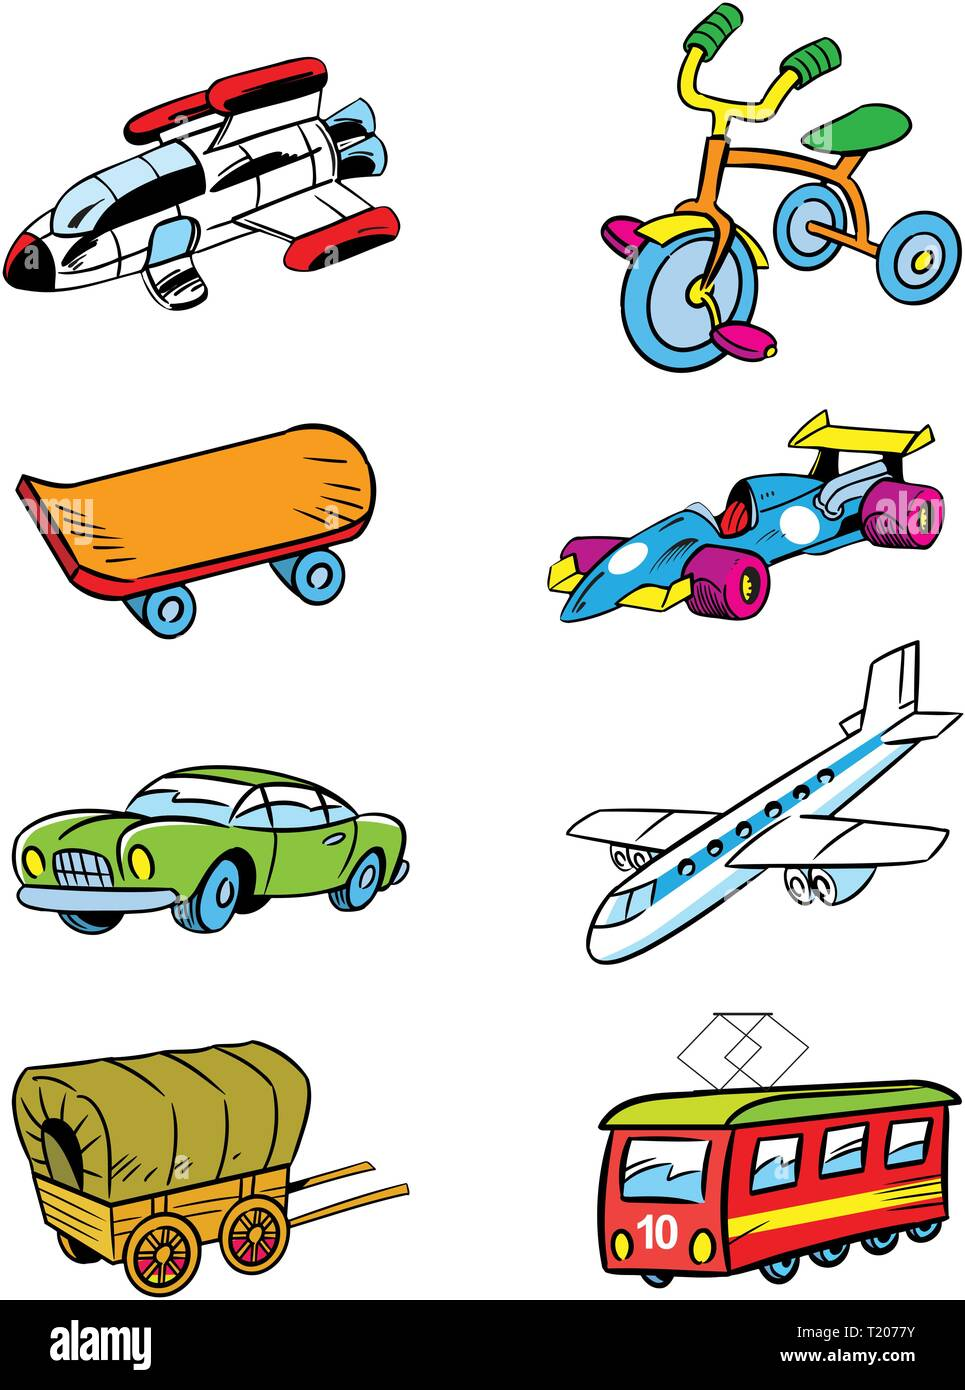 The illustration shows some types of transport and vehicles. Illustration done in cartoon style, on separate layers. - Stock Image